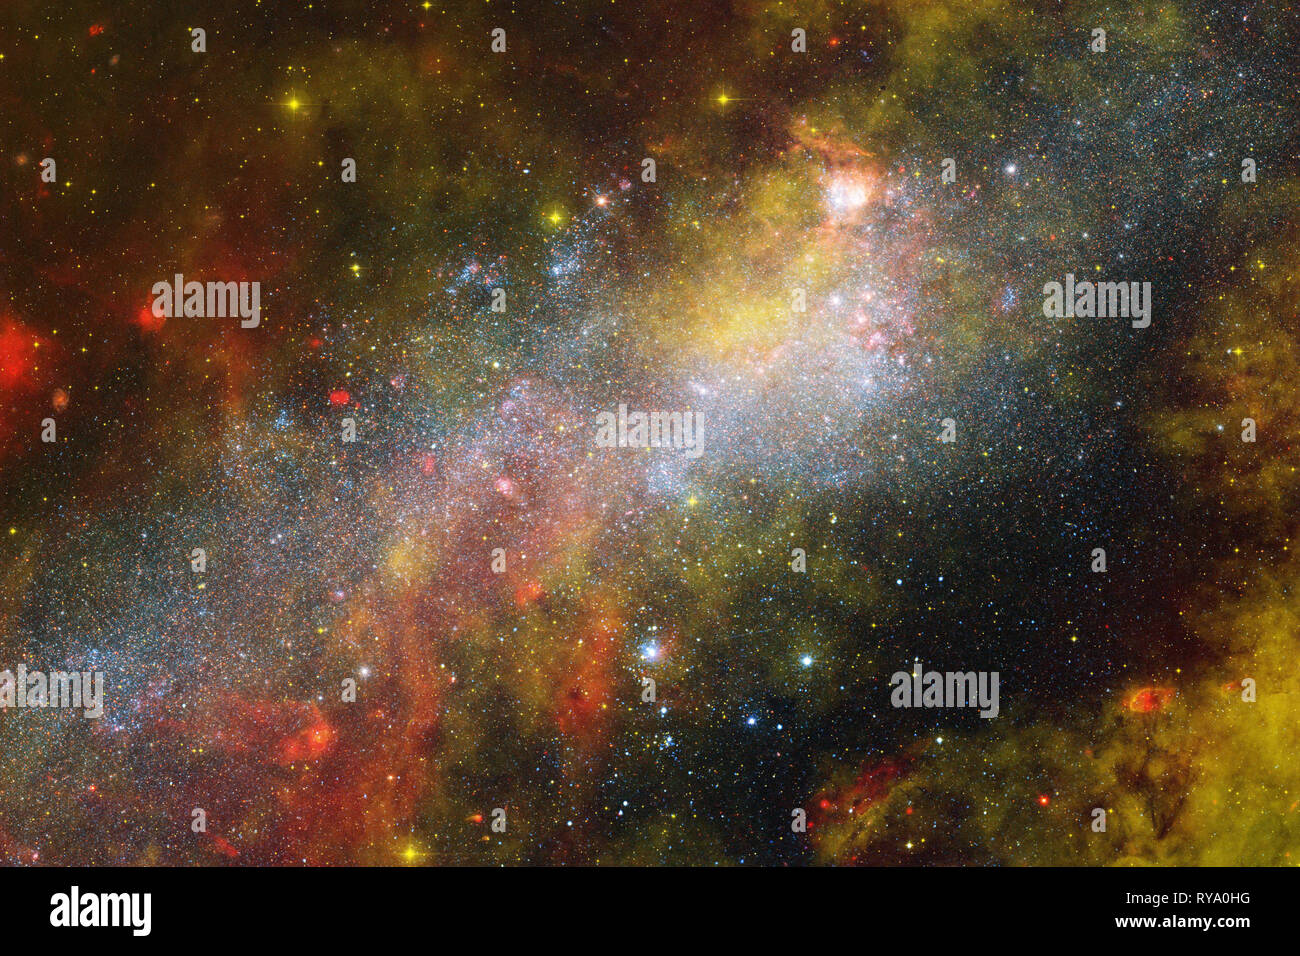 beautiful of universe science fiction wallpaper elements of this image furnished by nasa RYA0HG